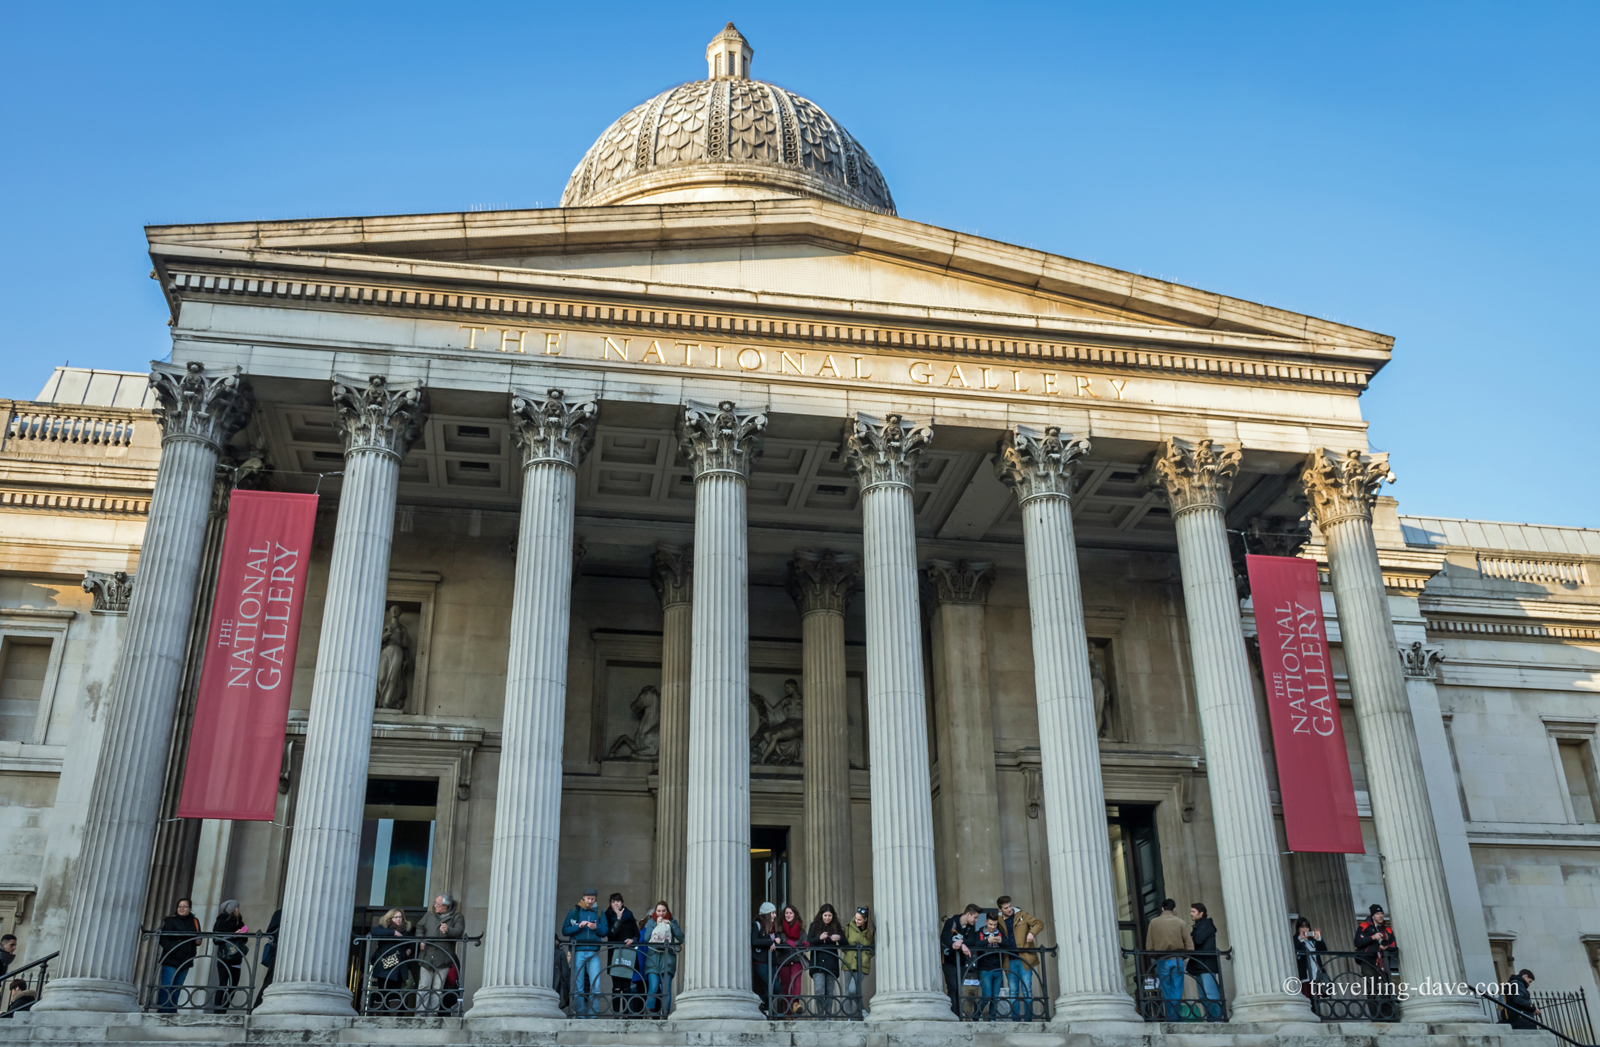 View of the Portico Entrance of the National Gallery in London